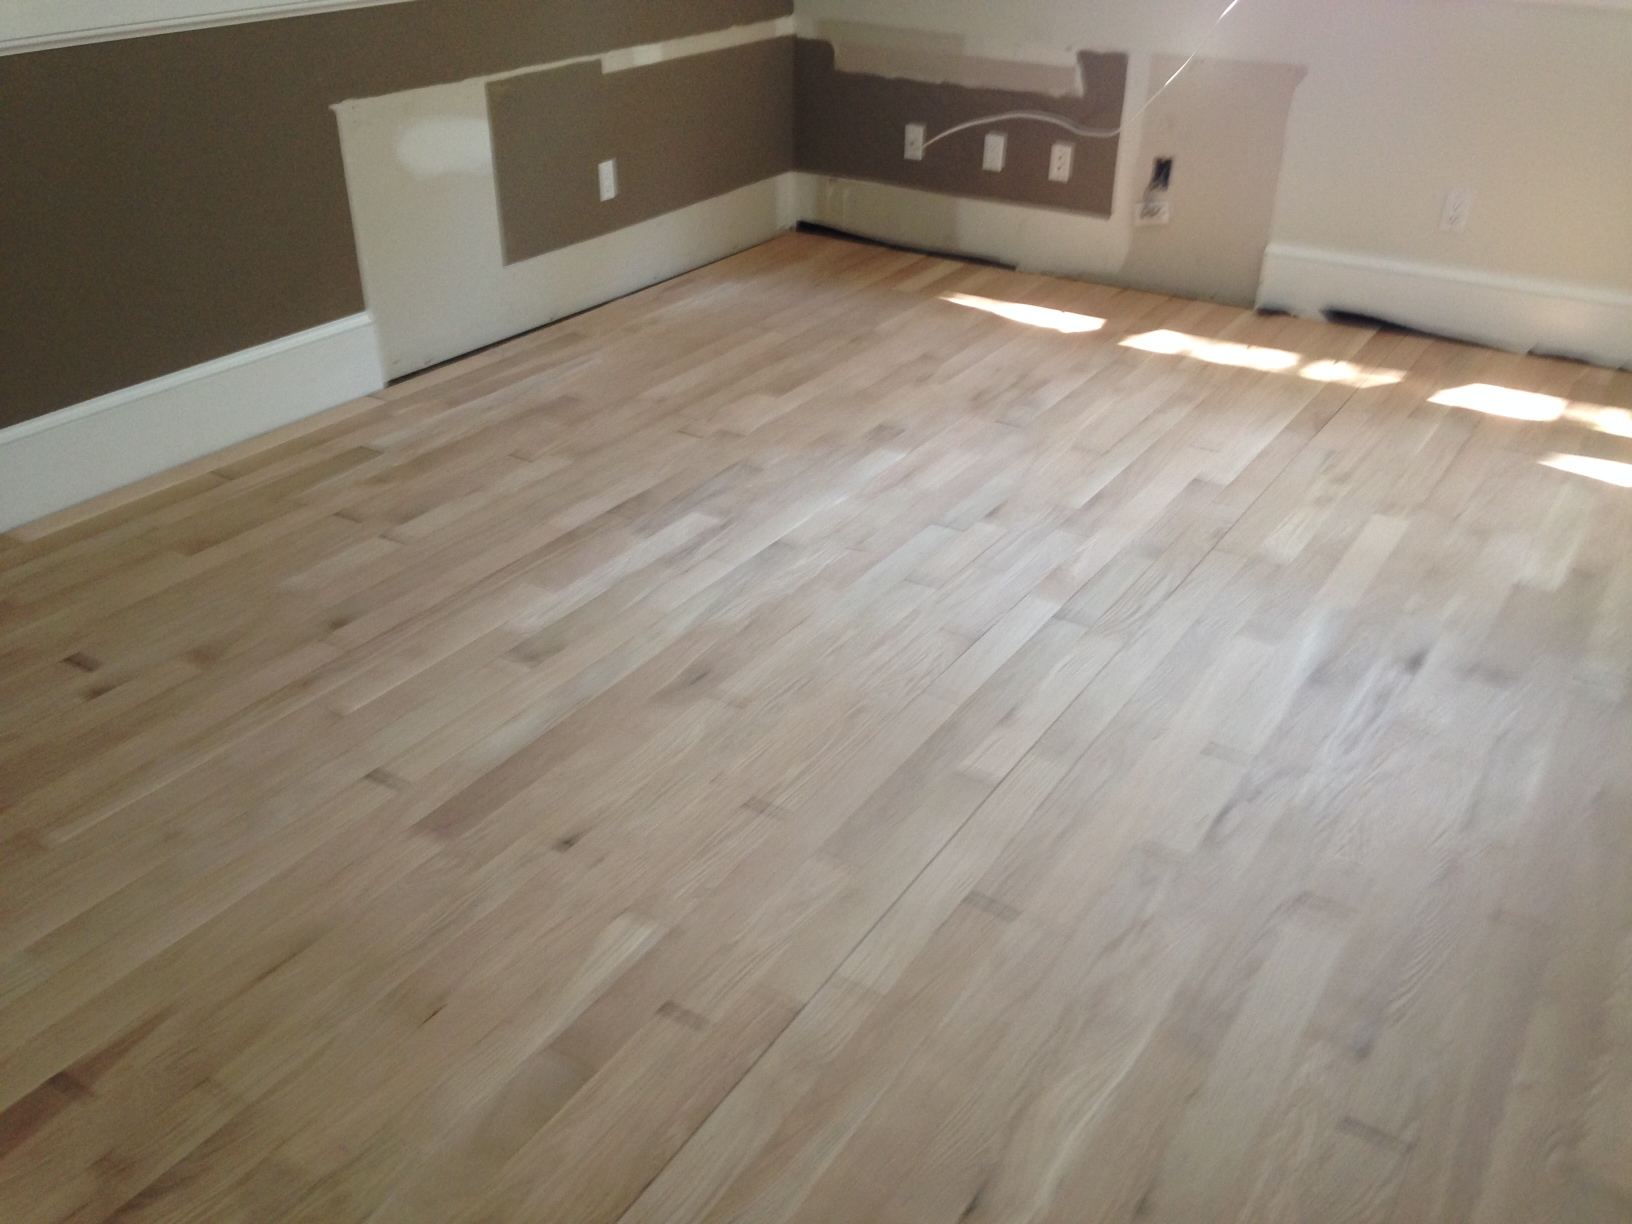 Untreated oak flooring meze blog for Solid oak wood flooring